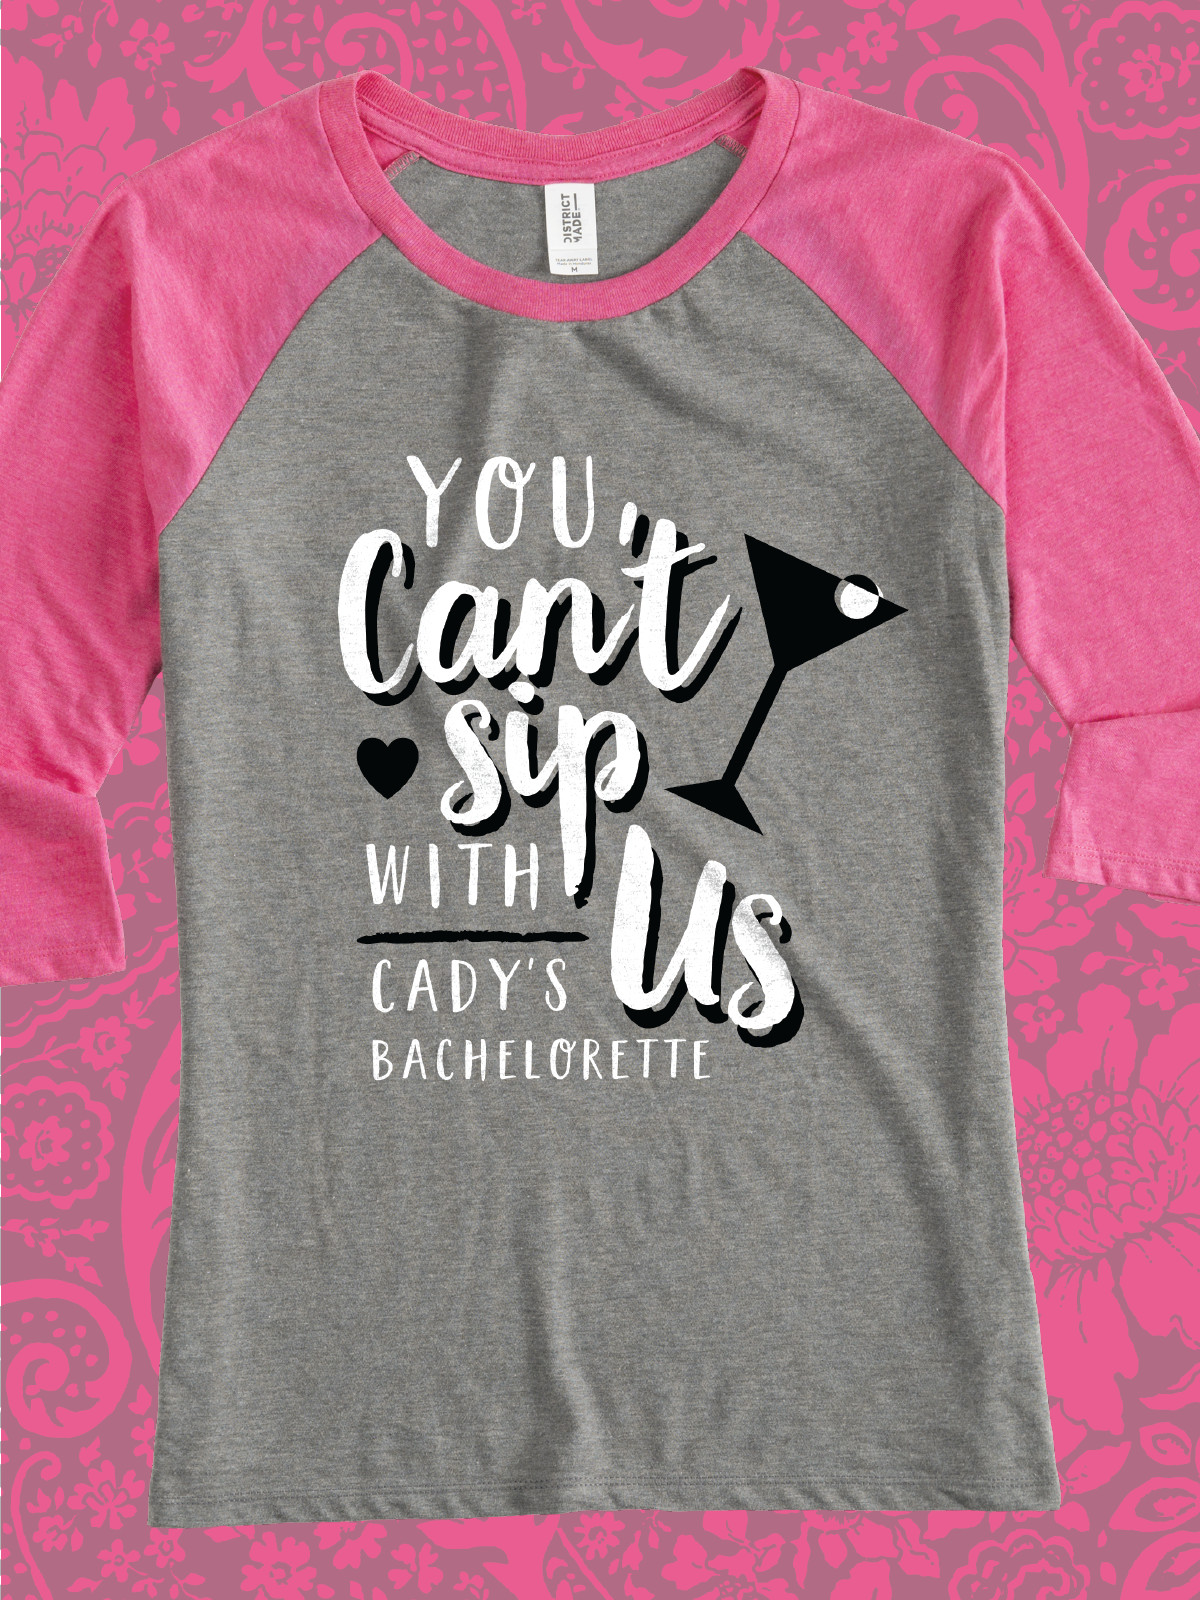 Bachelorette Party T Shirt Ideas  Funny and Trendy Bachelor & Bachelorette Party Shirts